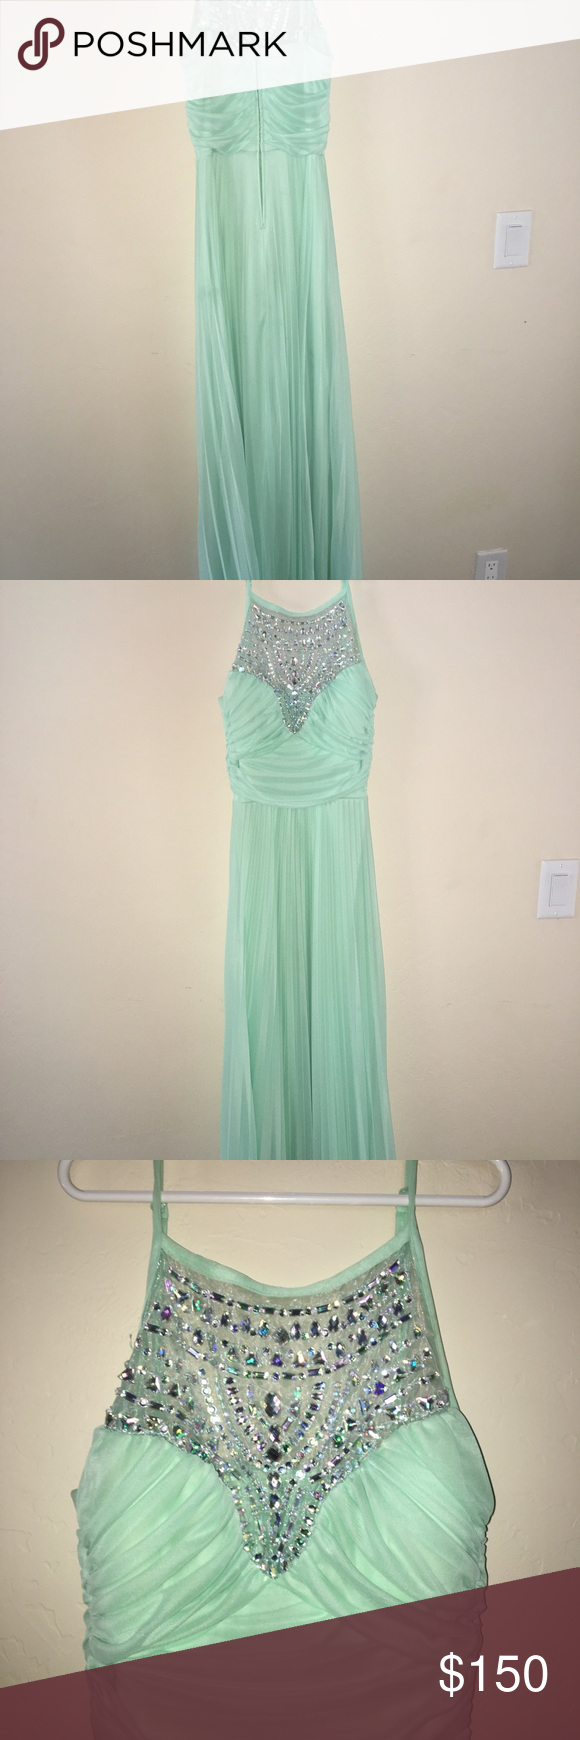 Teal prom dress size perfect condition teal prom and dress prom